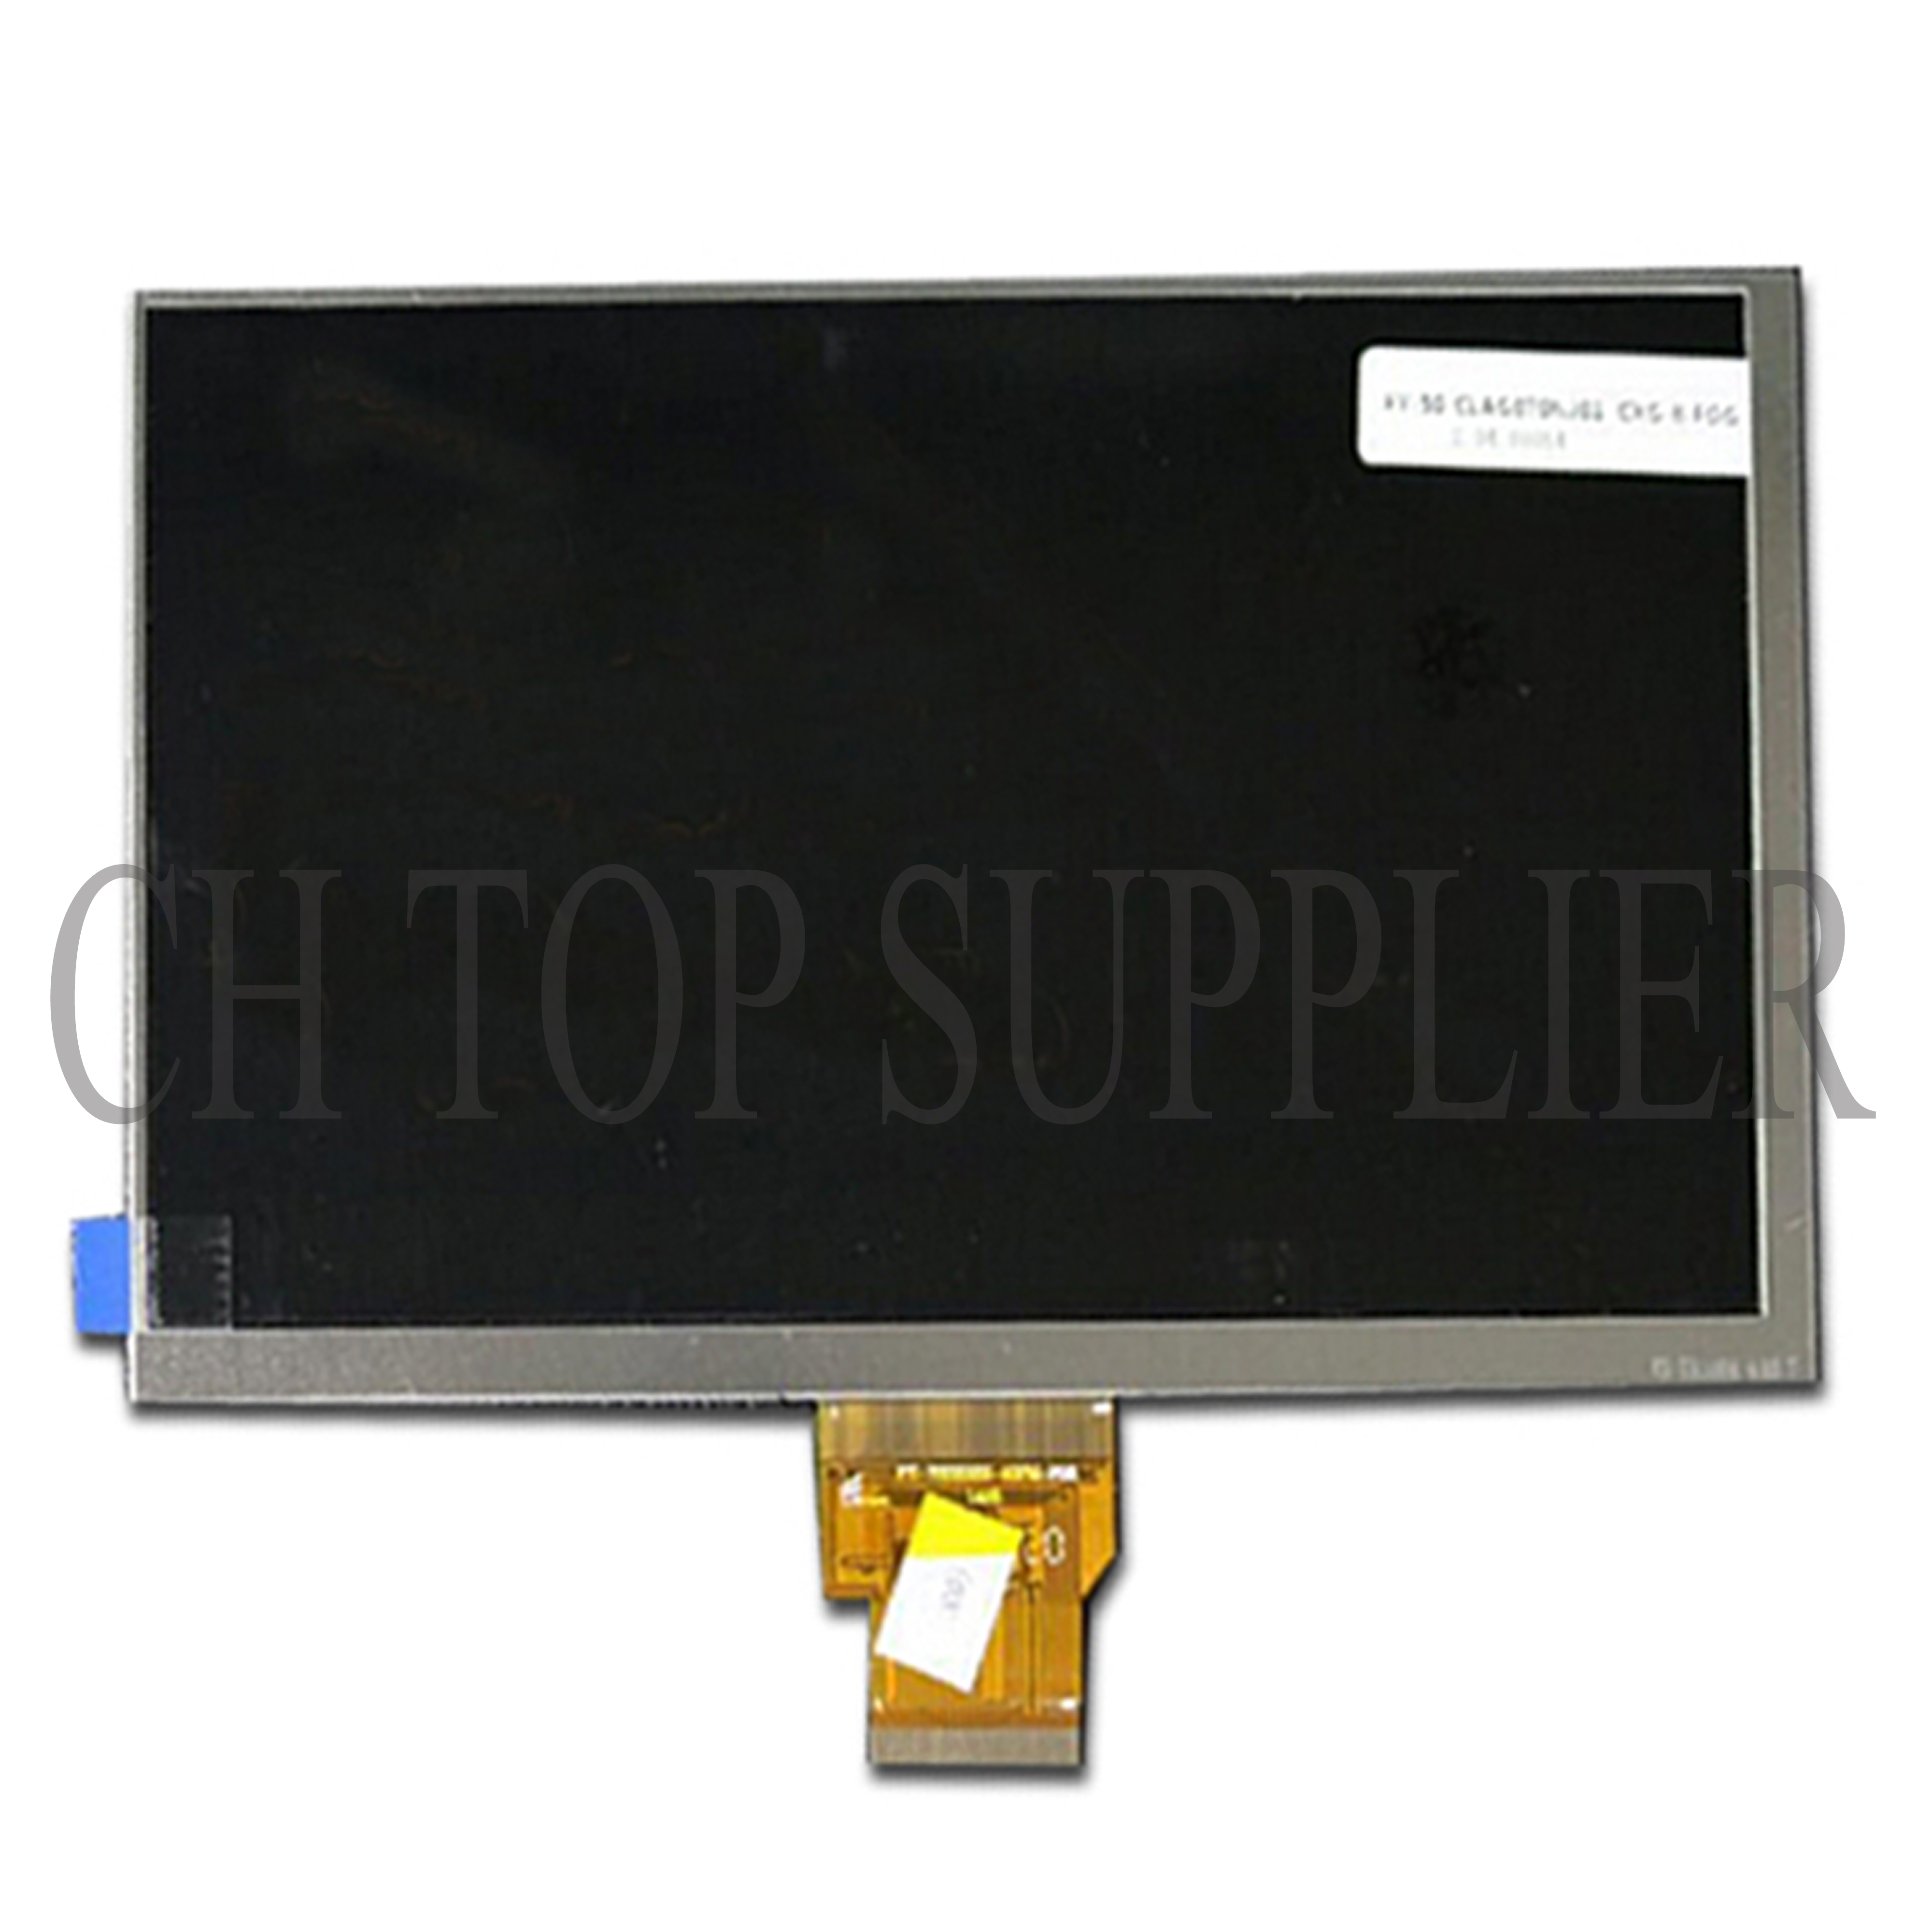 Original 7 inch FY-70DZ02H-40PM-P08 LCD Display Screen For Ampe G750 G705 Ampe A71 Tablet pc Replacements Free Shipping am pm 7 день большой медицины таблетки tablet box диспенсер организатор держатель